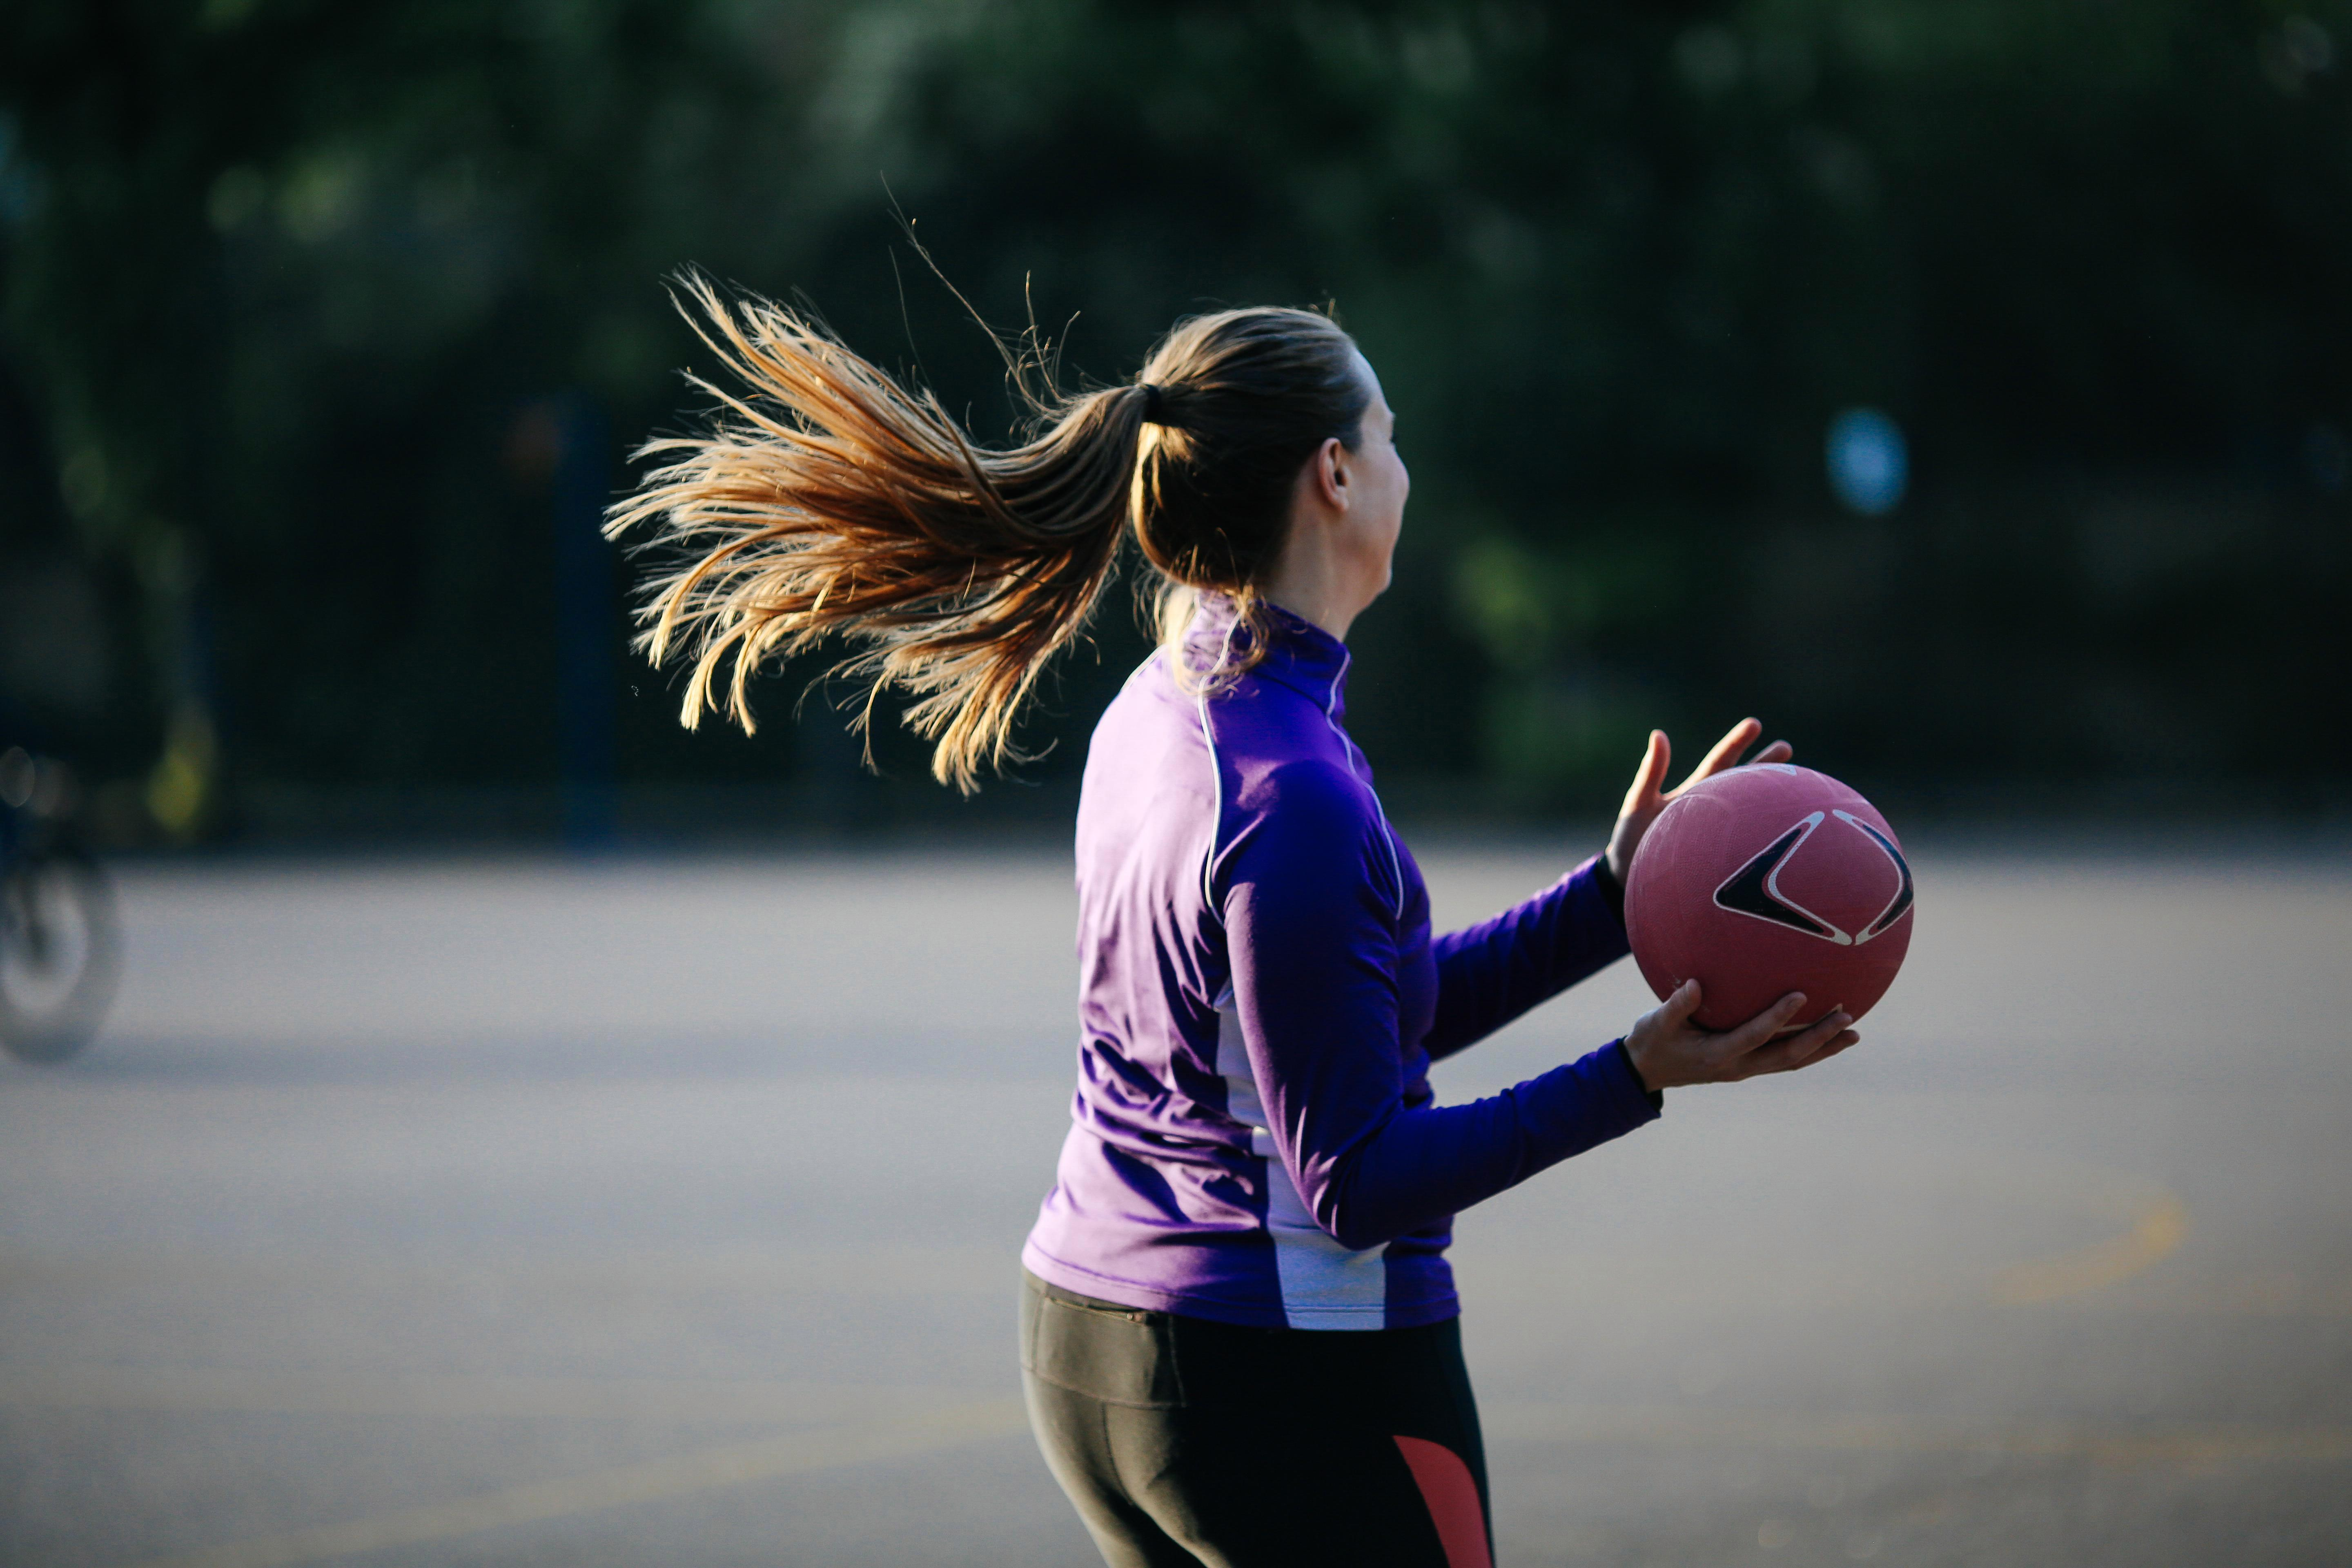 I am transgender and play for a women's netball team but spectators are nasty